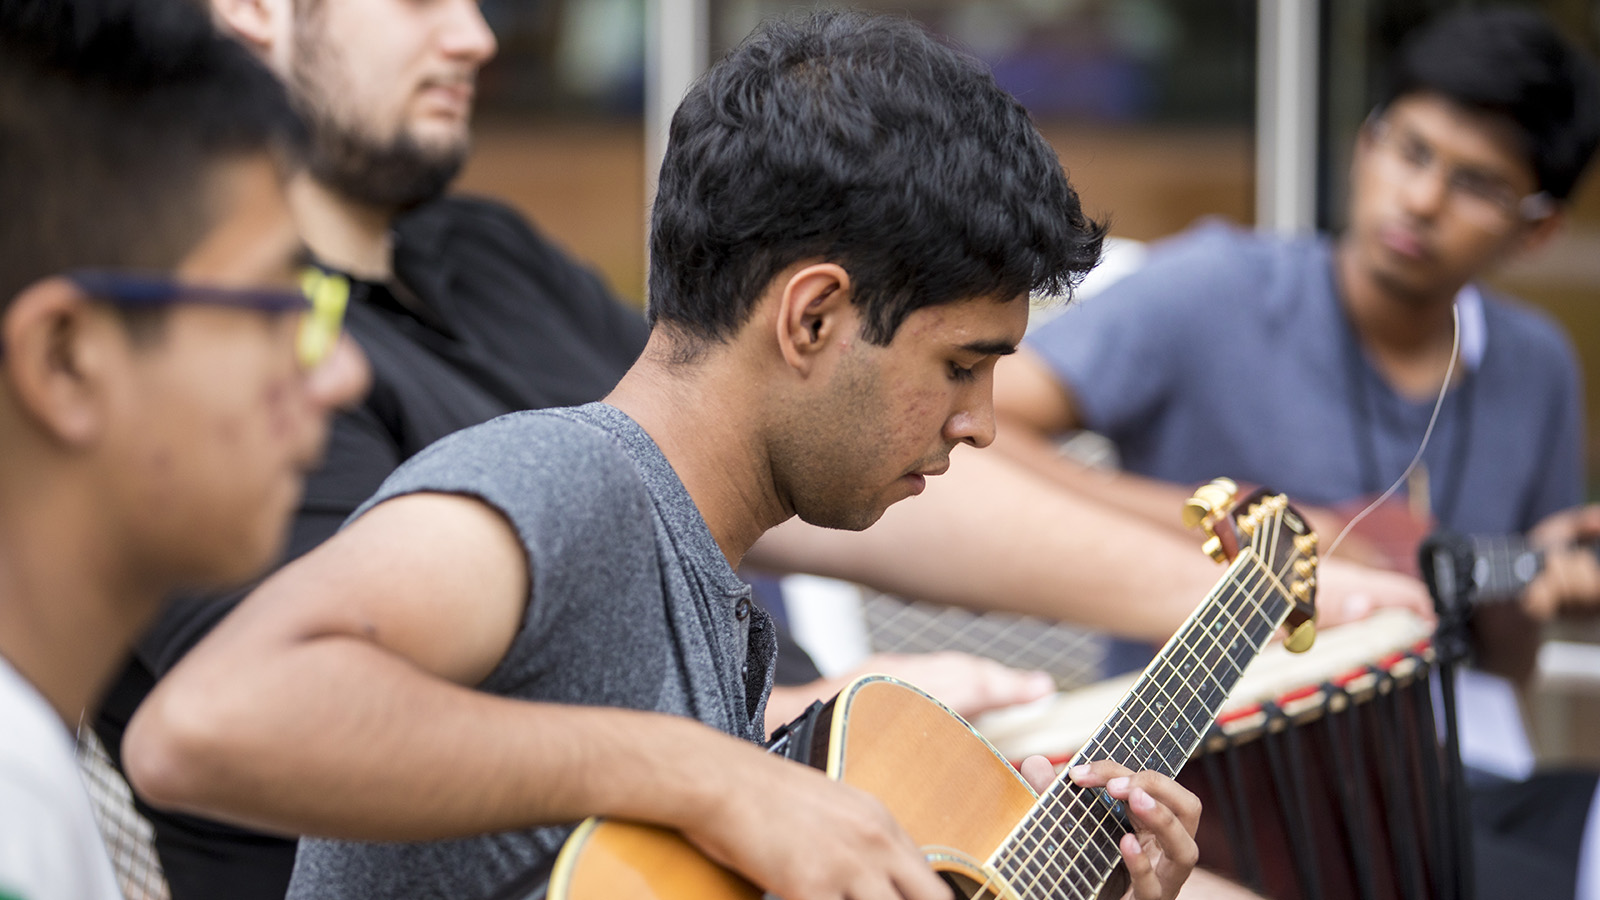 students play guitars and drums outdoors